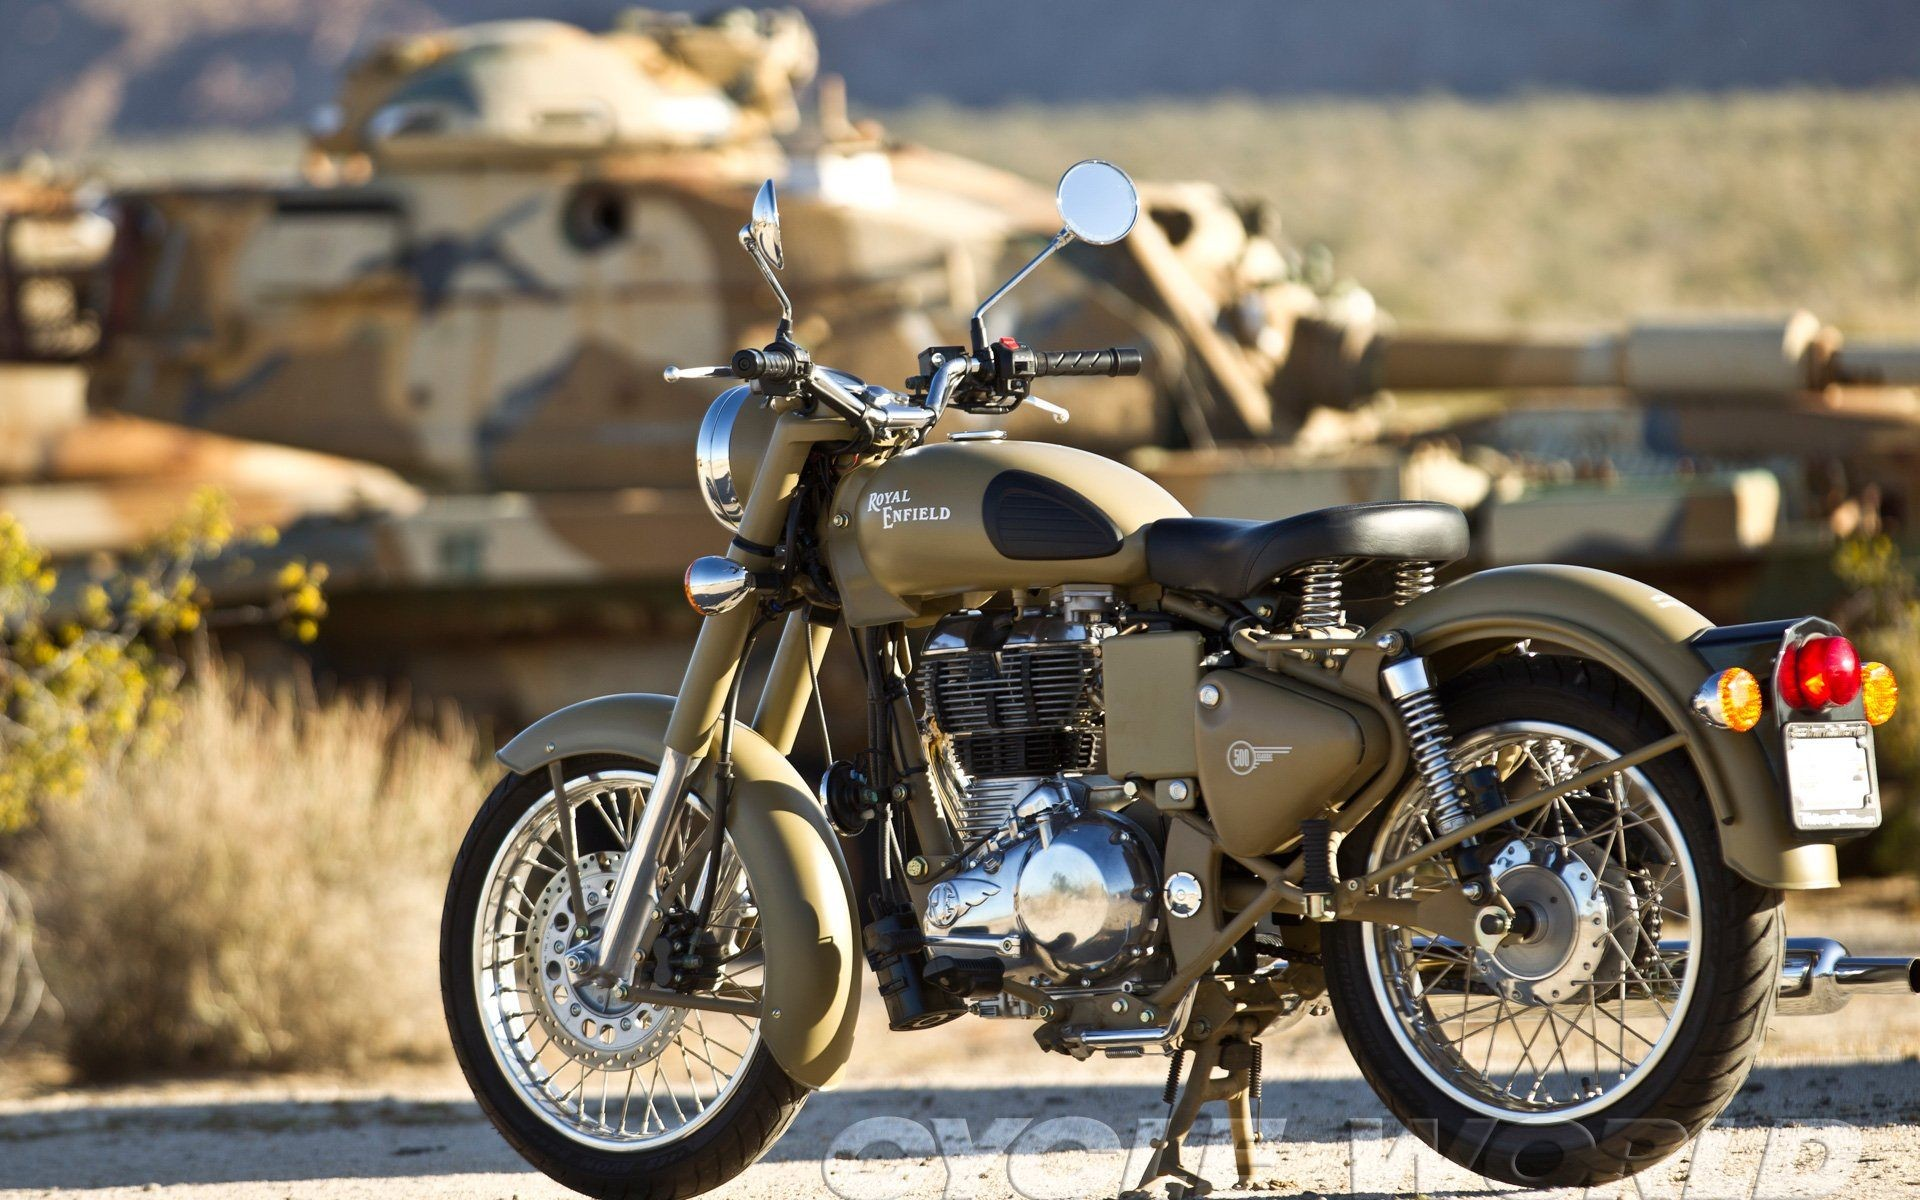 350 Enfield Hd And Royal Thunderbird 500 Wallpapers